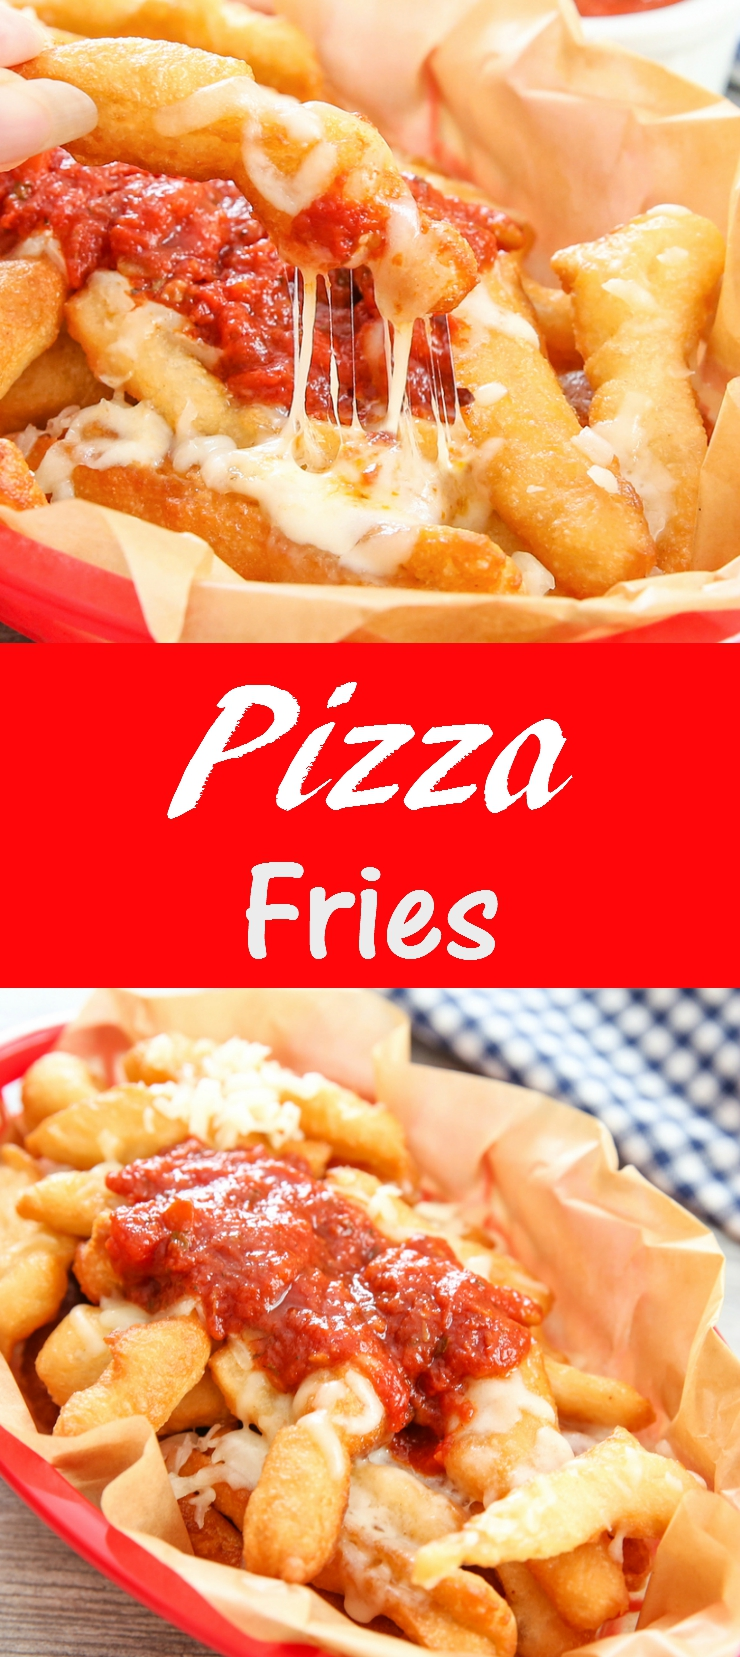 pizza fries photo collage